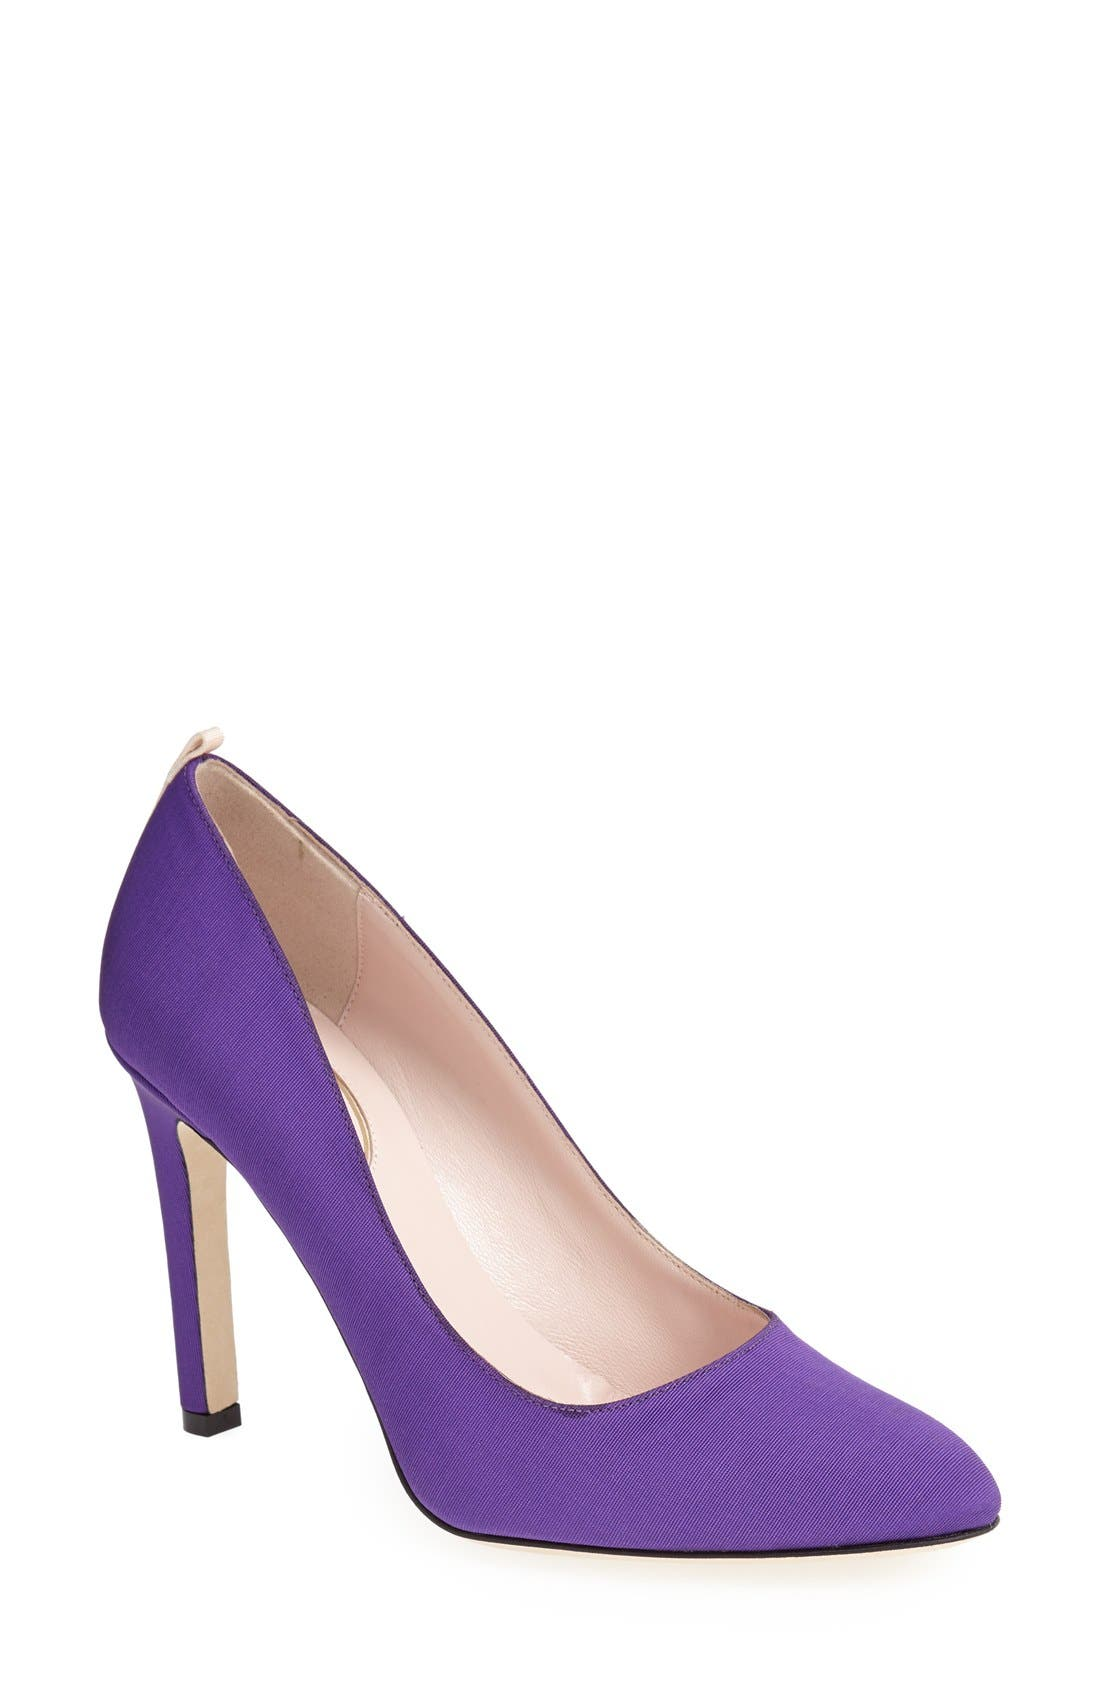 Alternate Image 1 Selected - SJP 'Lady' Pump